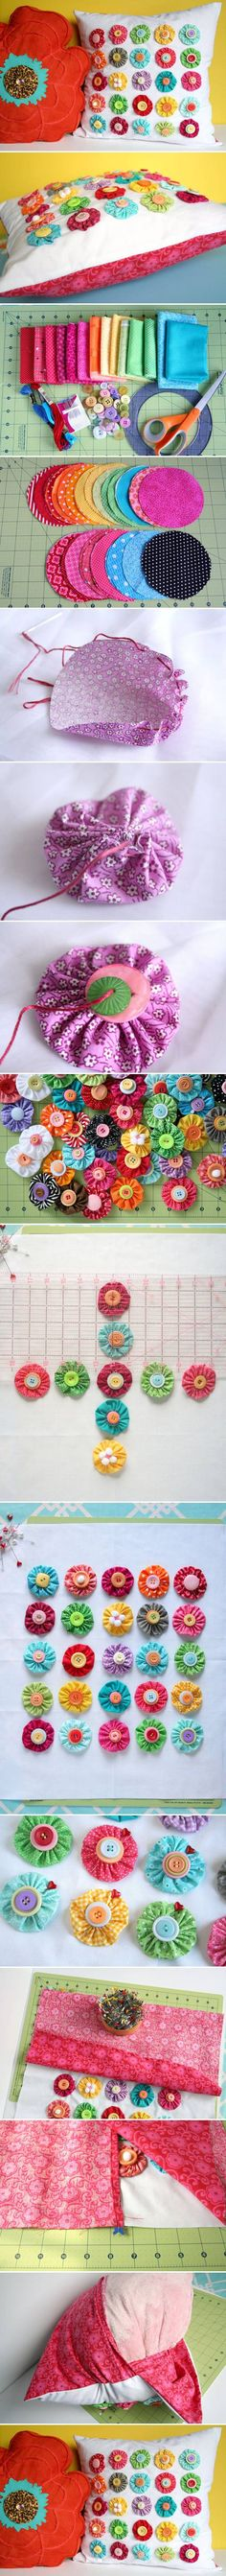 DIY Fabric Decorativ